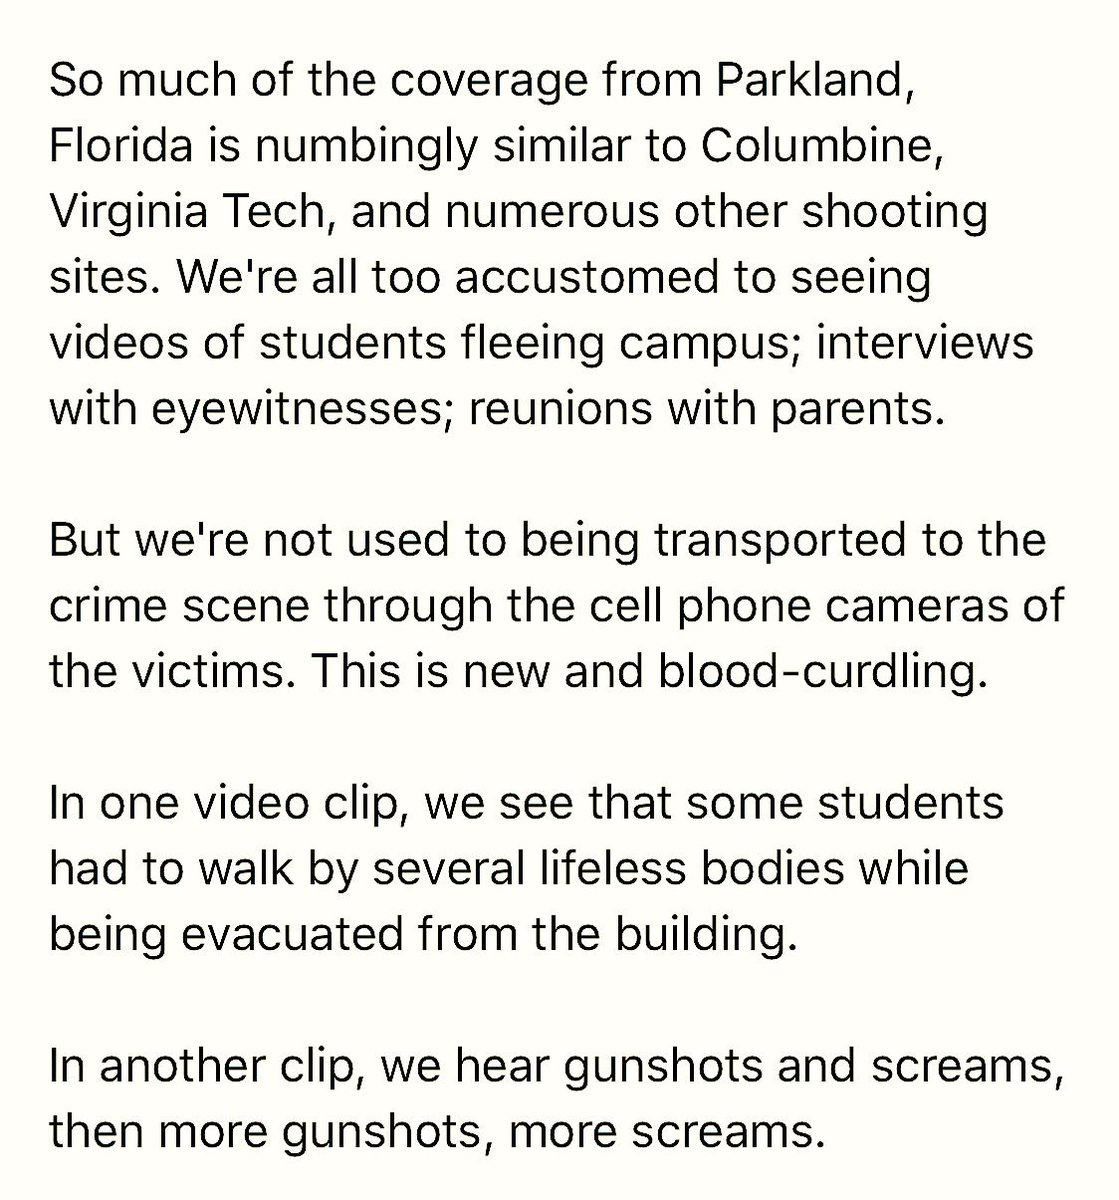 In one of the videos from Parkland, we see that some students had to walk by several lifeless bodies while being evacuated from their school.  https://t.co/wB5PQzaynx